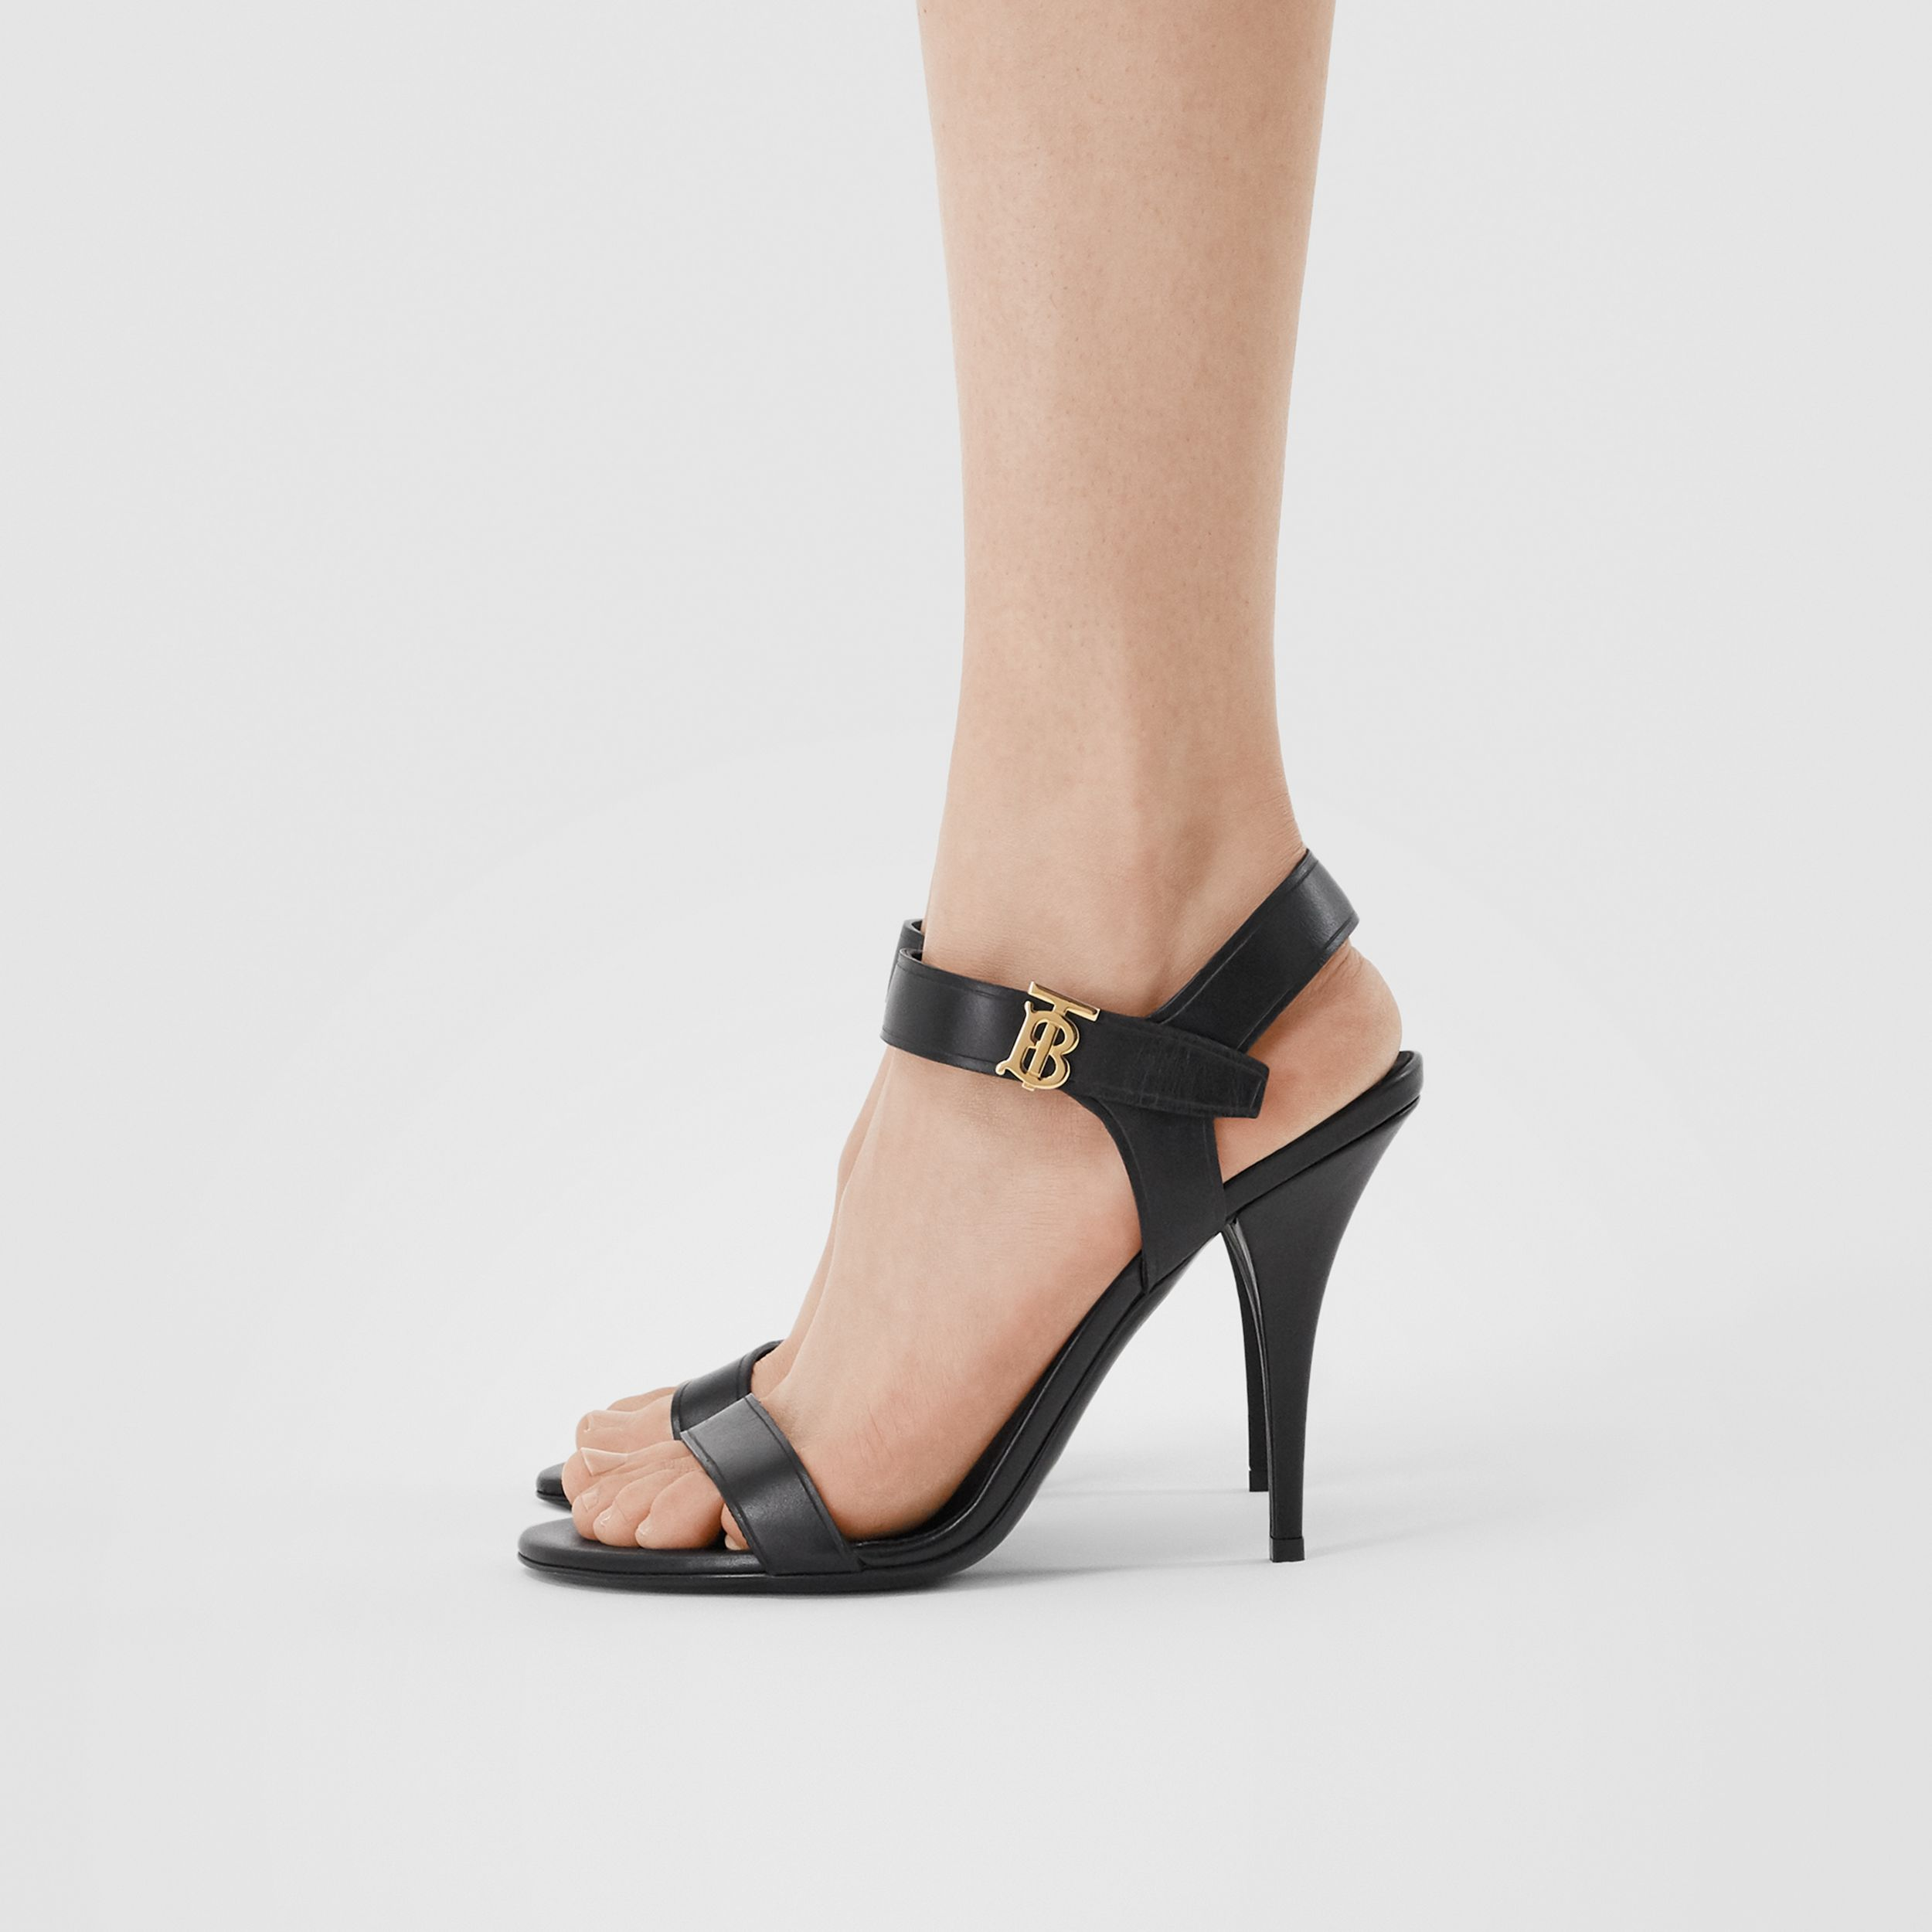 Monogram Motif Leather Sandals in Black - Women | Burberry - 3